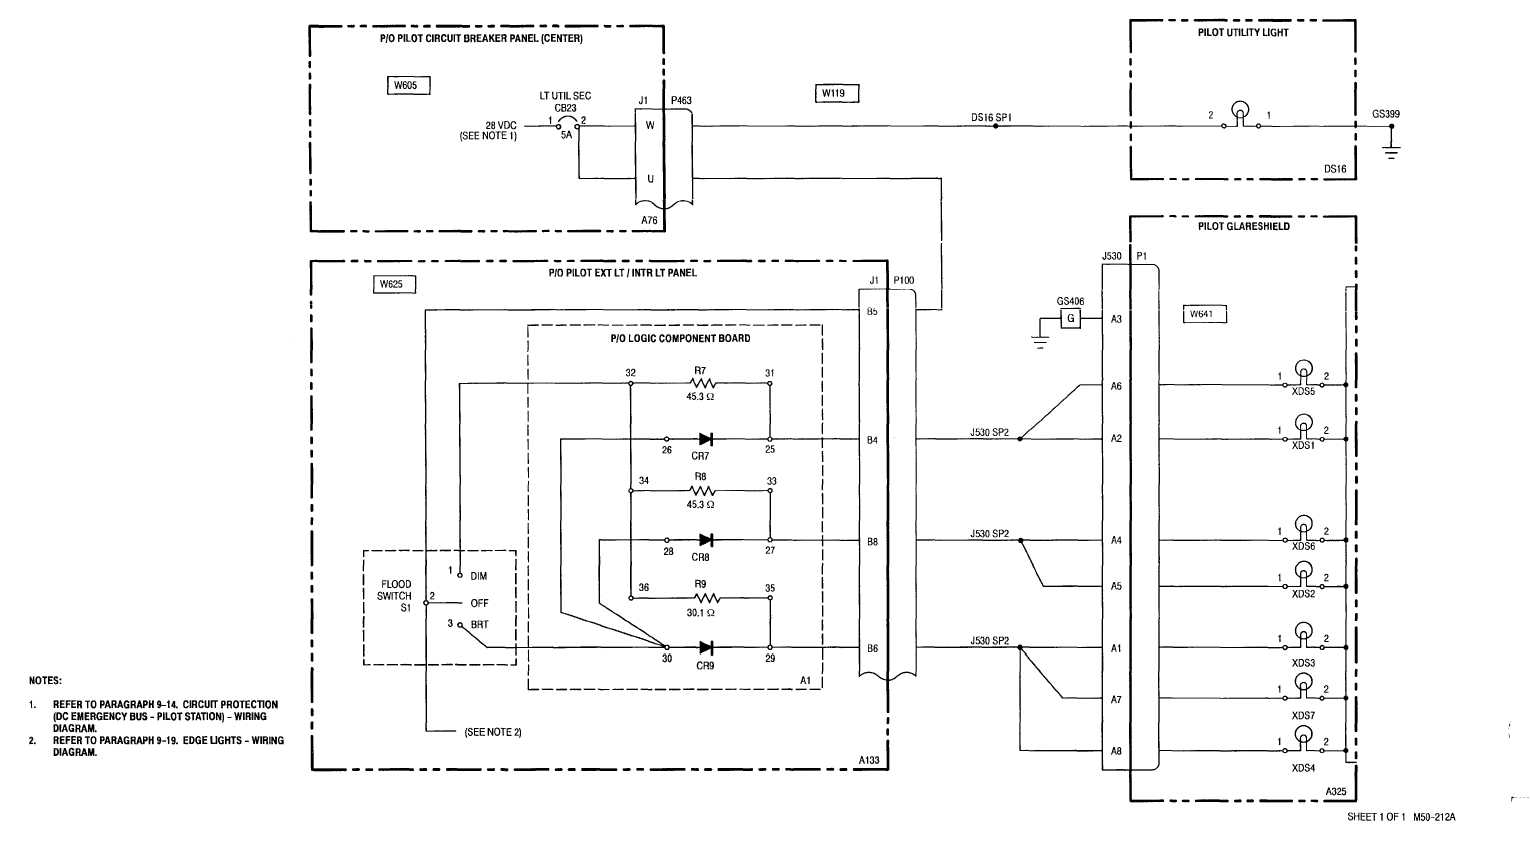 921 Pilot Utility And Secondary Lights Wiring Diagram